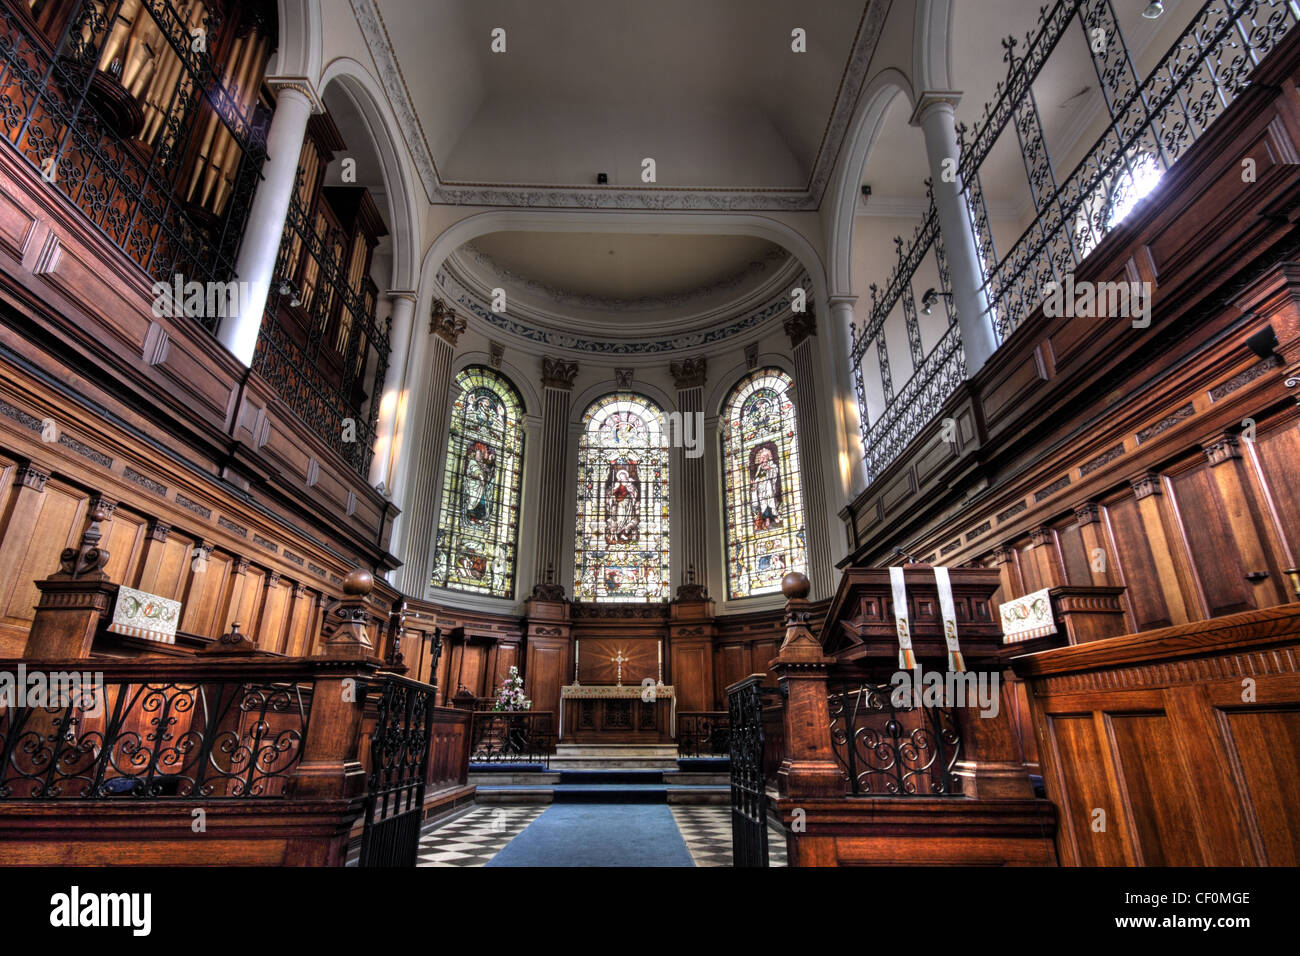 St Ann's Church Manchester Altar View - Stock Image